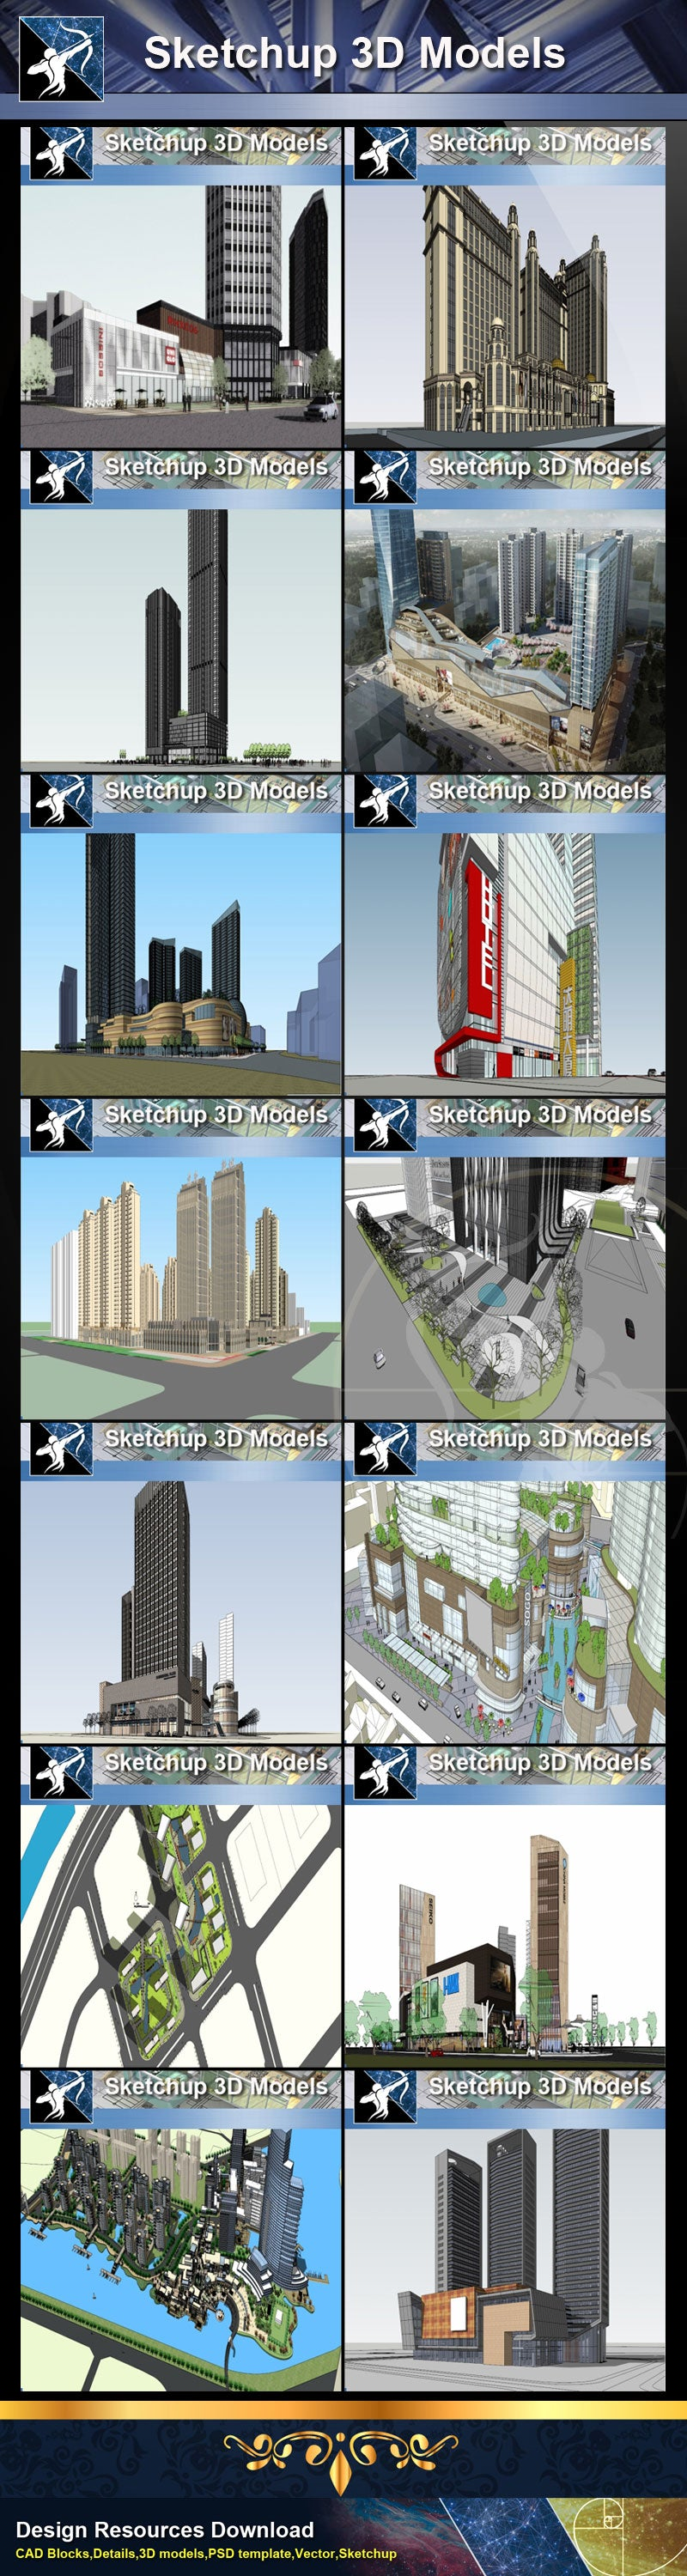 ★Best 28 Types of Residential and Business Building Sketchup 3D Models Collection(Recommanded!!)